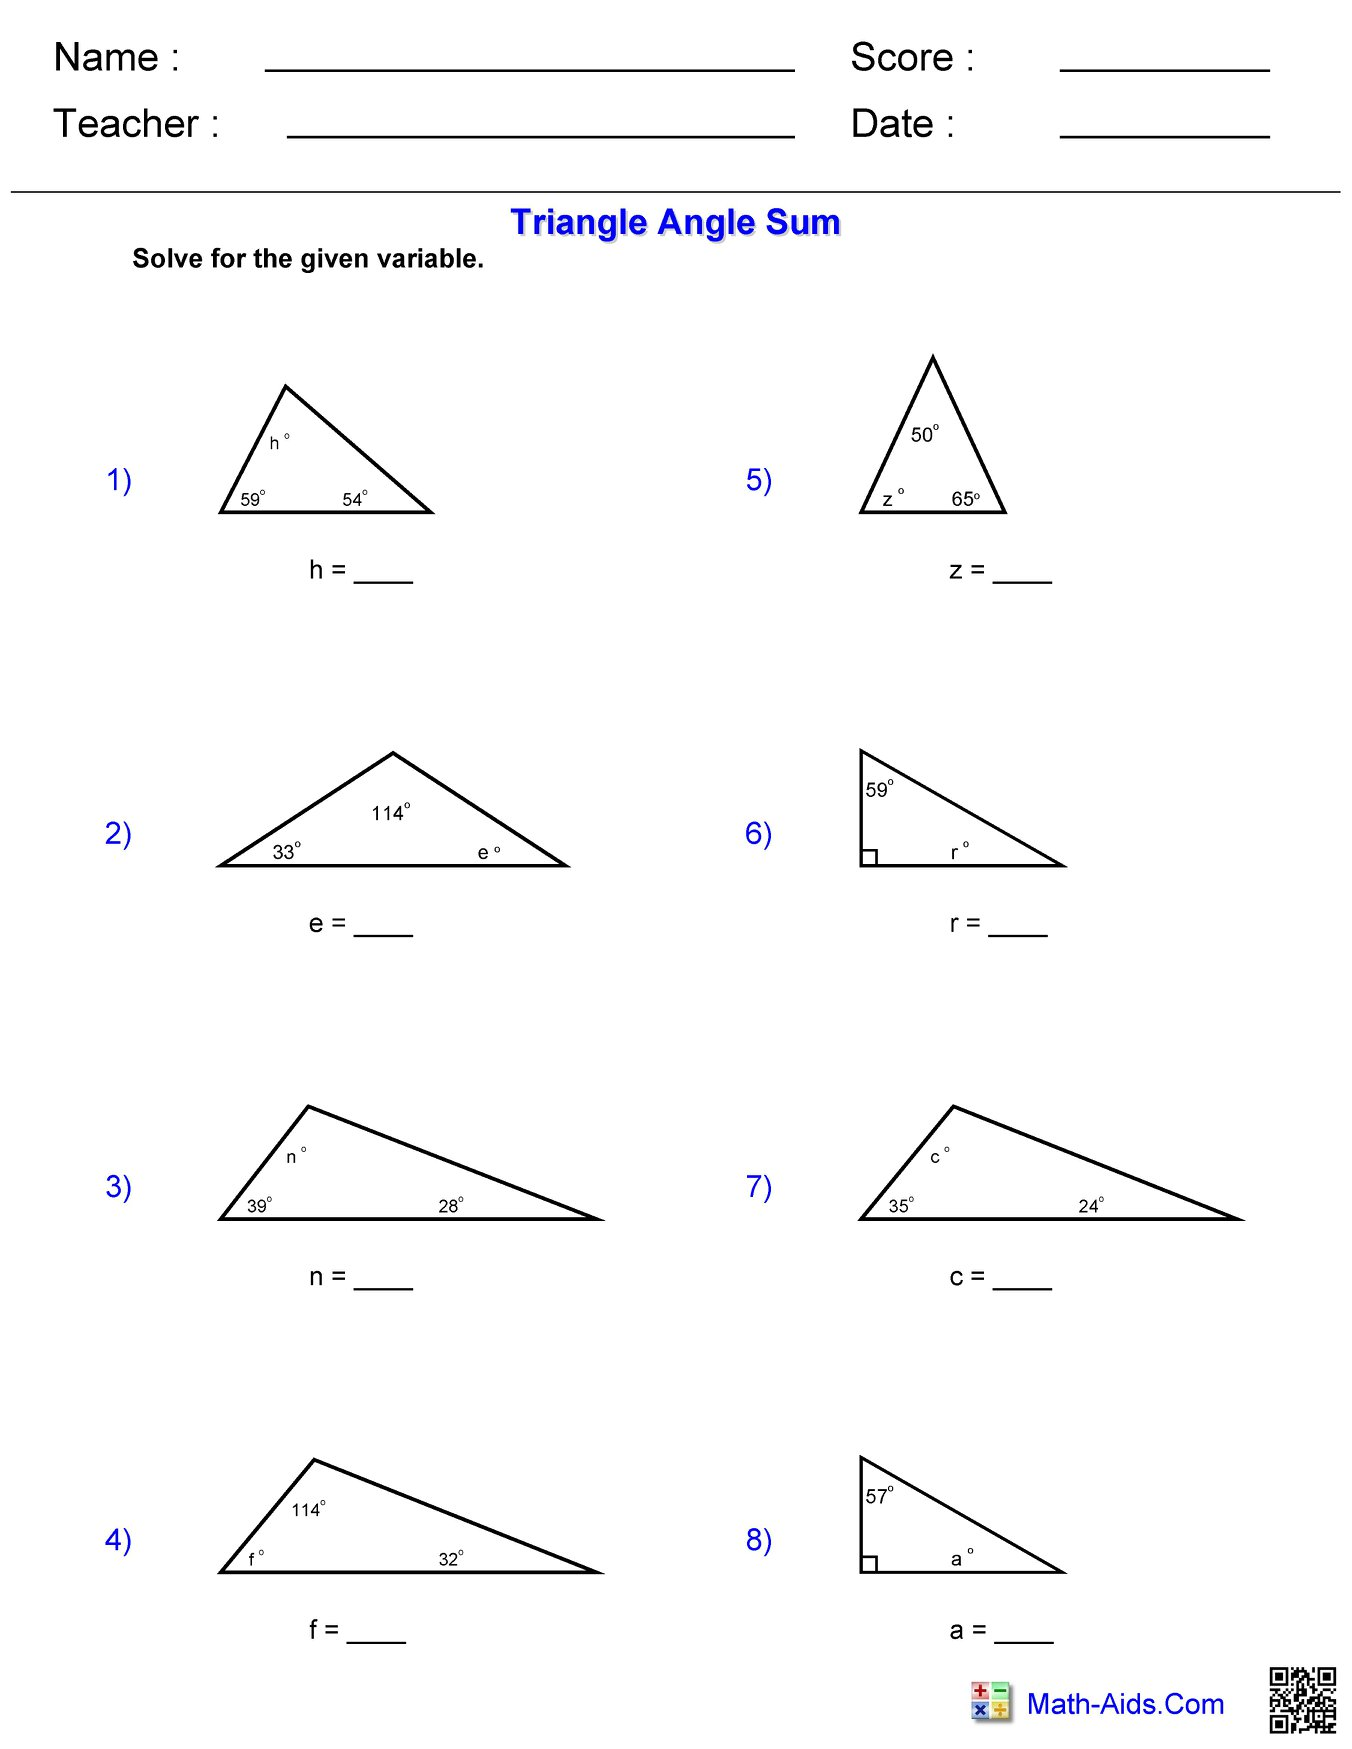 Triangle Angle Sum Hoeden At Home